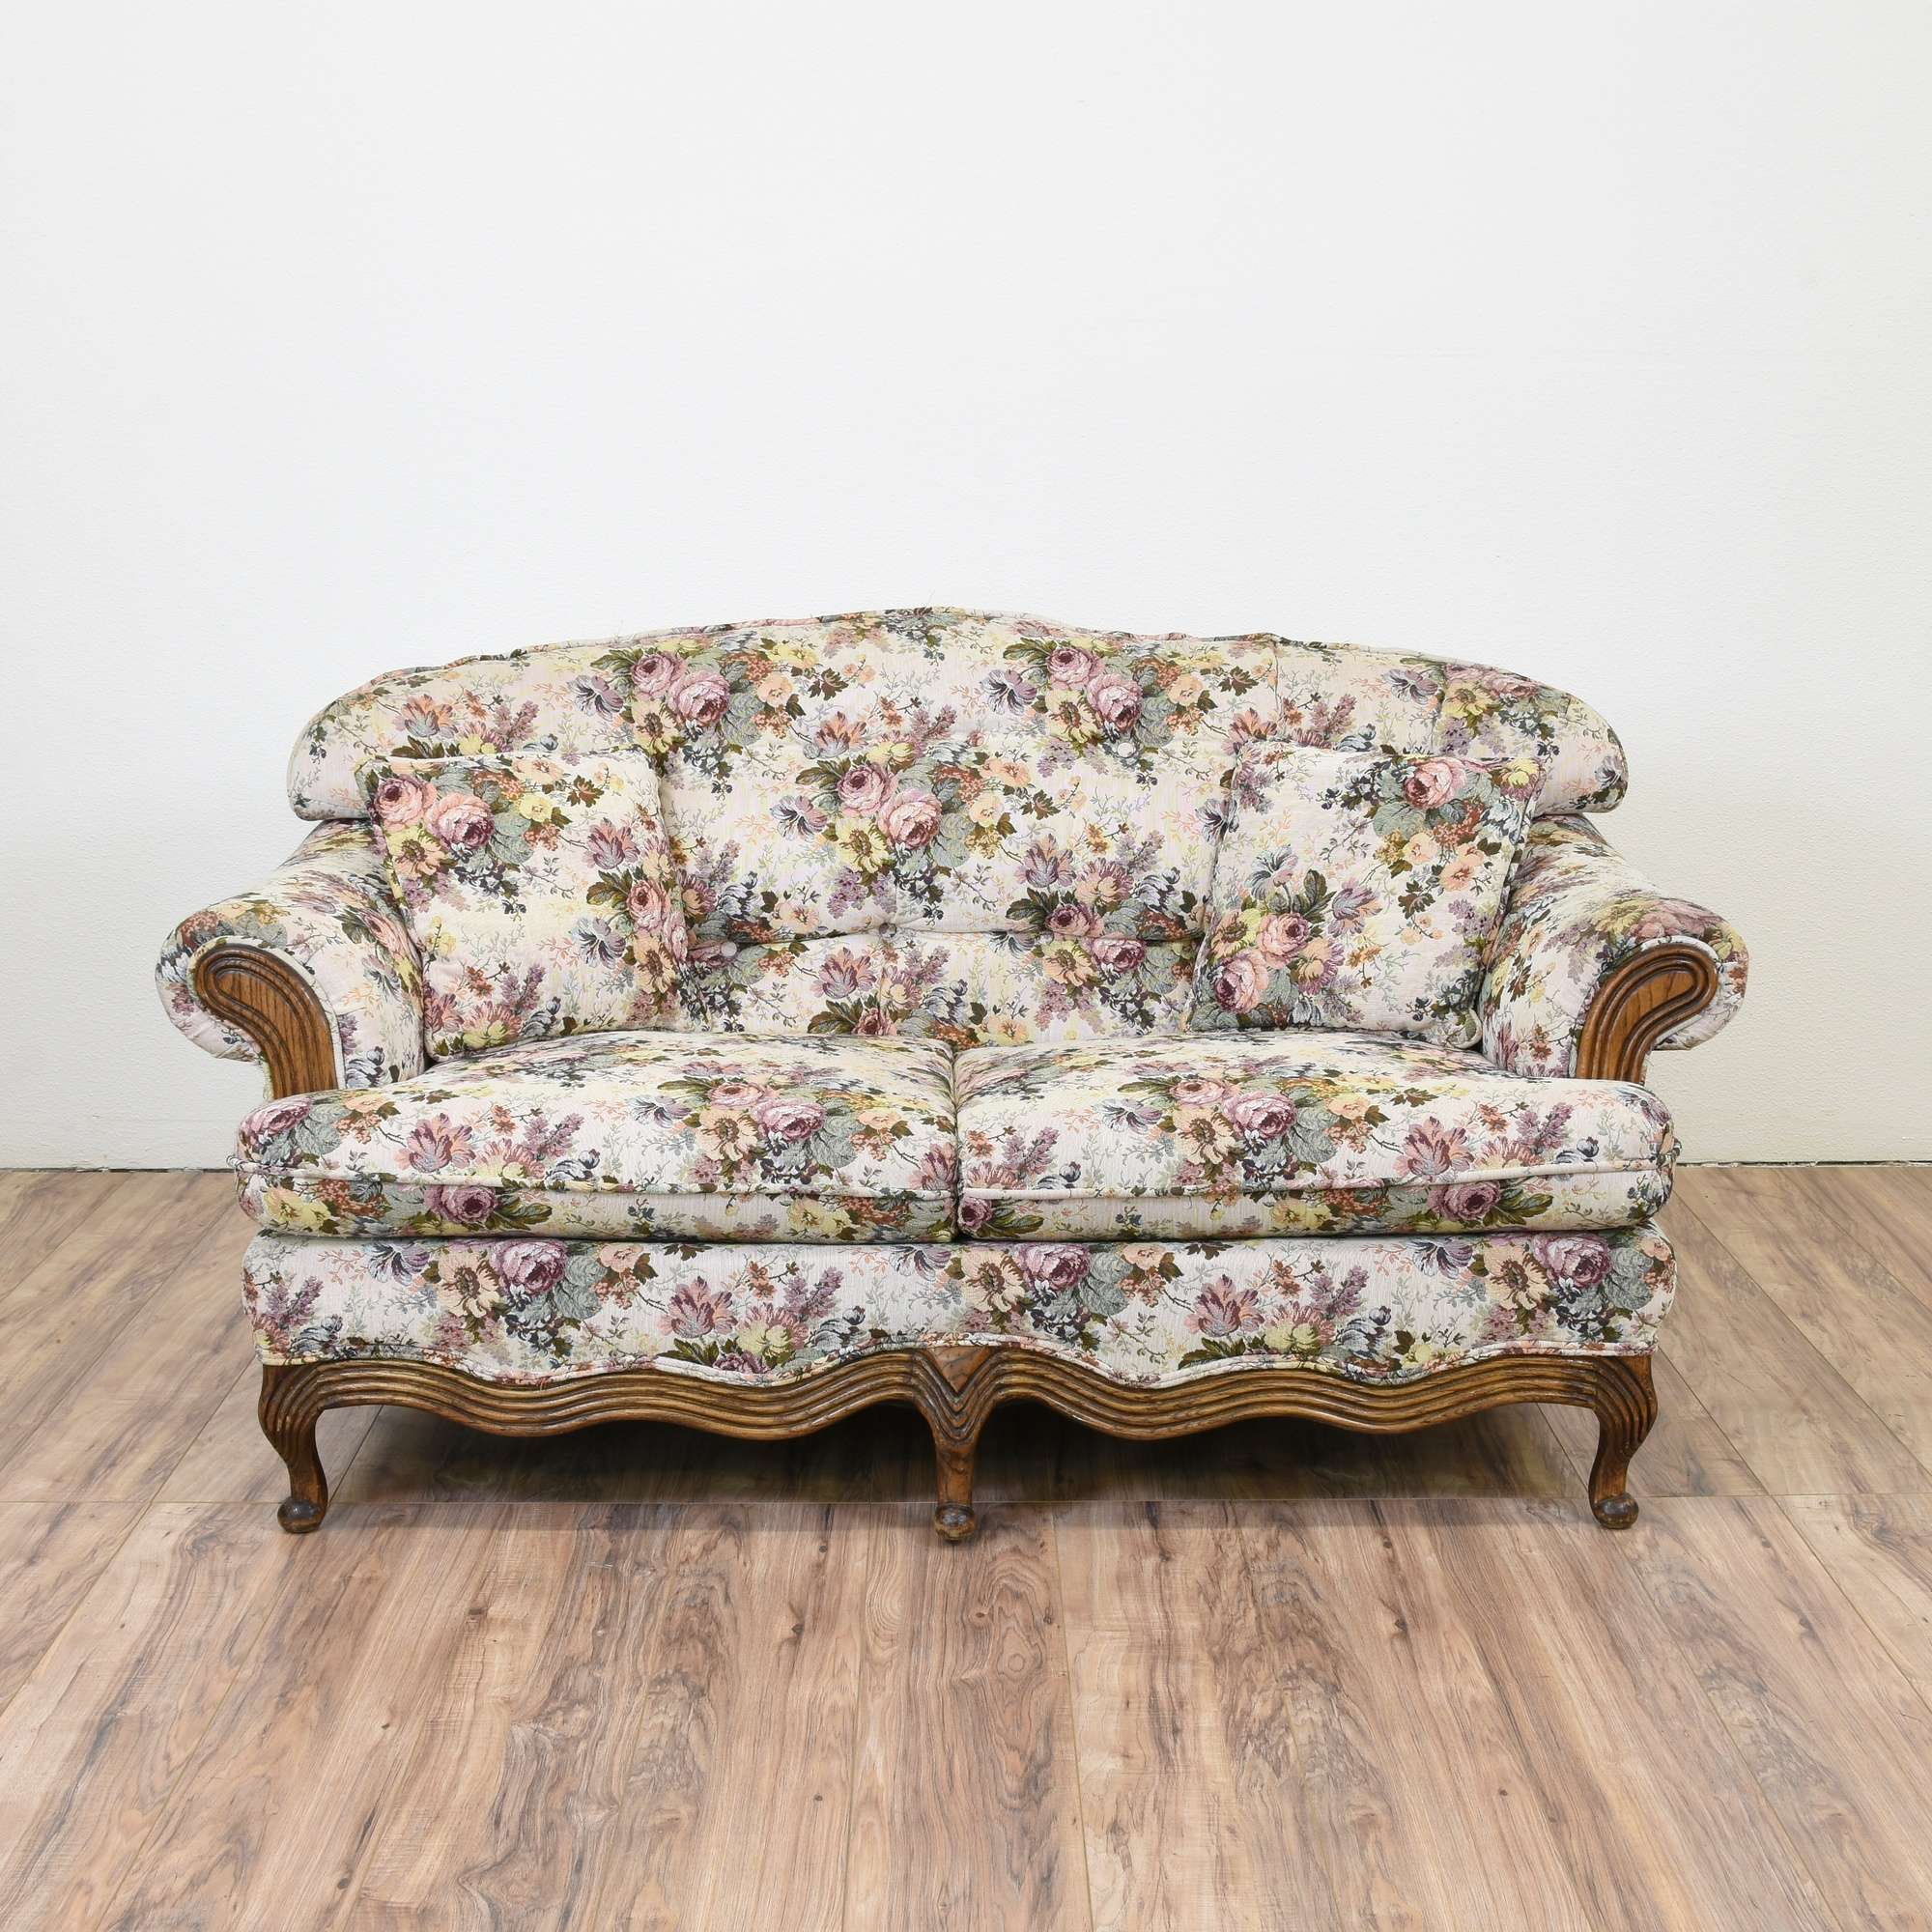 detail product sofa kathy kuo ivory country paisley french home beige loveseat chambery upholstered